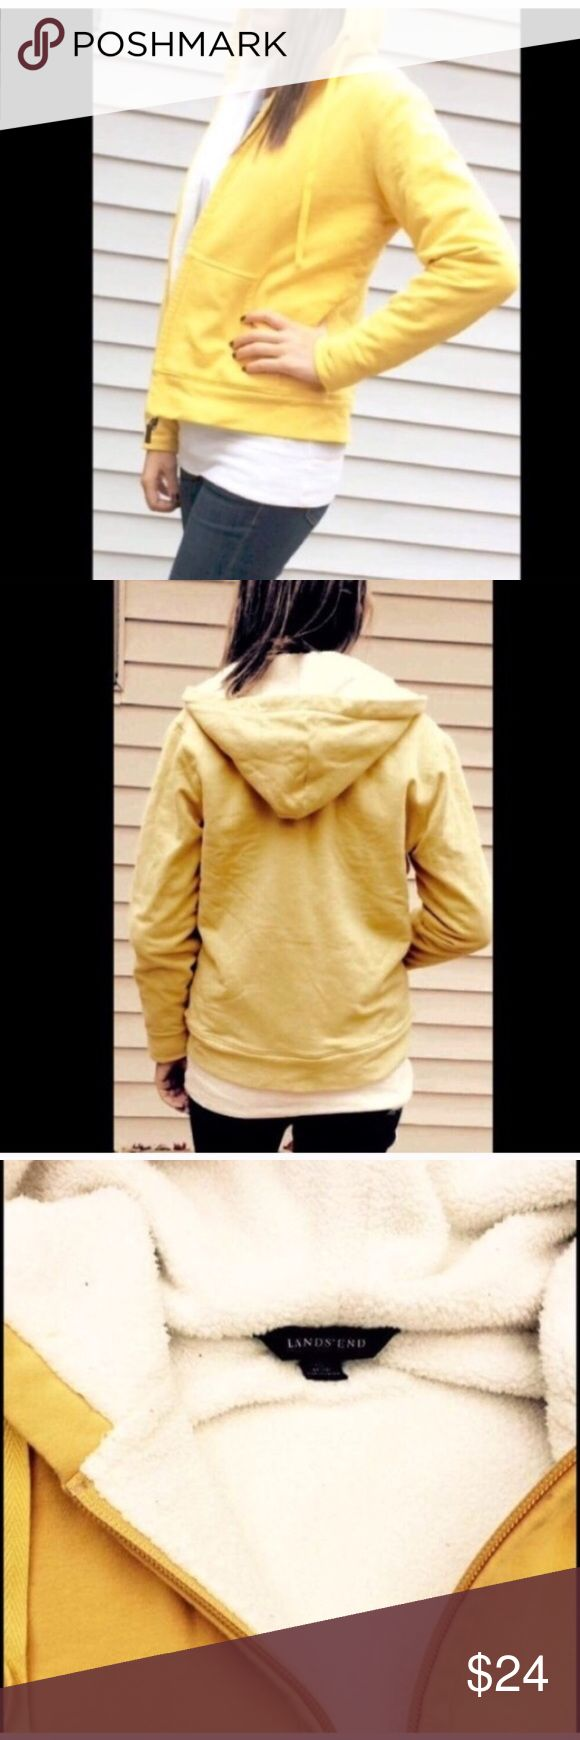 Women's LANDS'END Yellow Zip Up Hoodie Women's LANDS' END zip up jacket. Color is yellow with white inside. Very warm and in great condition, only worn a few times. Lands' End Jackets & Coats